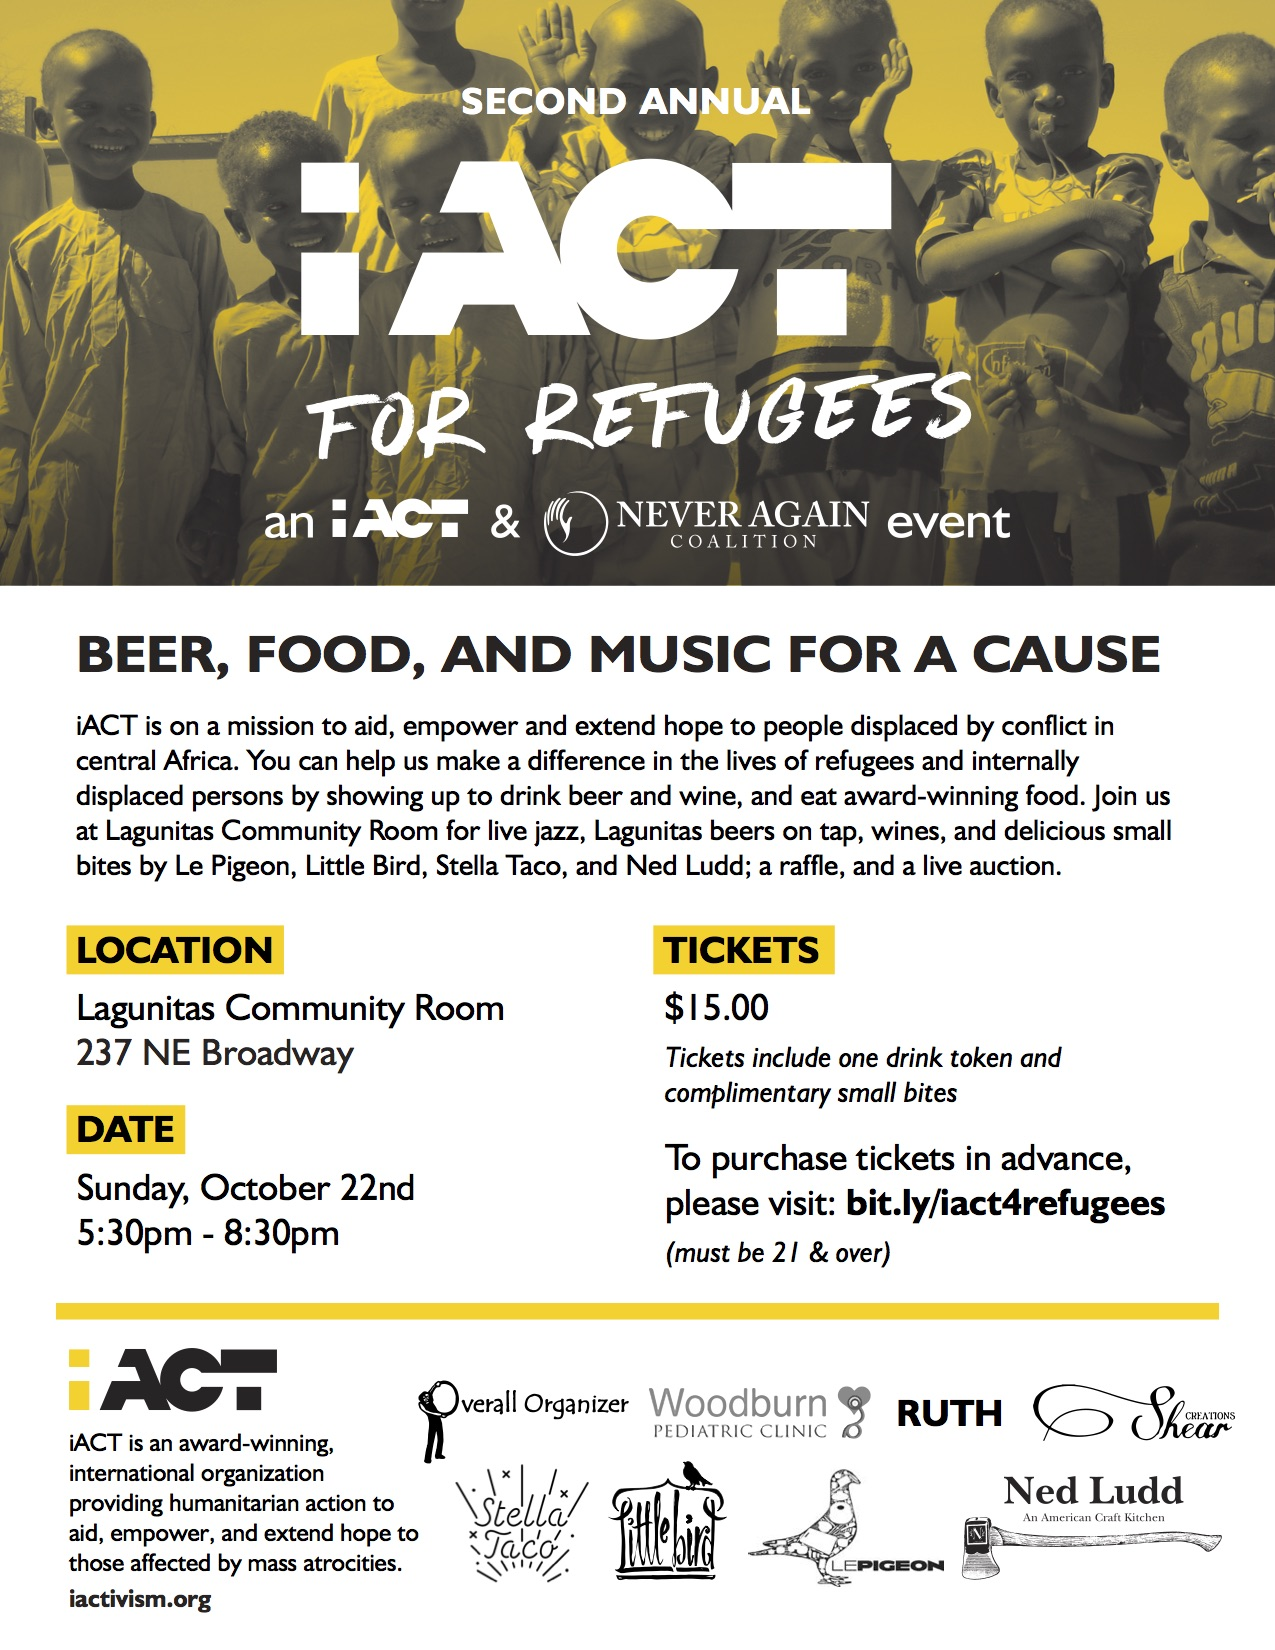 In partnership with the Never Again Coalition, iACT is preparing for the 2nd annual  iACT for Refugees ! The event is taking place at the Lagunitas Community Room where we'll have live music, Lagunitas beers on tap, a raffle, live auction, and a unique refugee preschool exhibit.    Get your tickets and join us for an inspiring evening!    Even if you can't make it, you can purchase raffle tickets. Check out the offerings  HERE !  iACT is on a mission to aid, empower, and extend hope to refugees facing humanitarian crises in central Africa. By connecting our community here in the Portland area with youth, women, teachers, and coaches in refugee camps in central Africa, we are creating a world where humanitarian action can impact the lives of communities living in refugee camps.